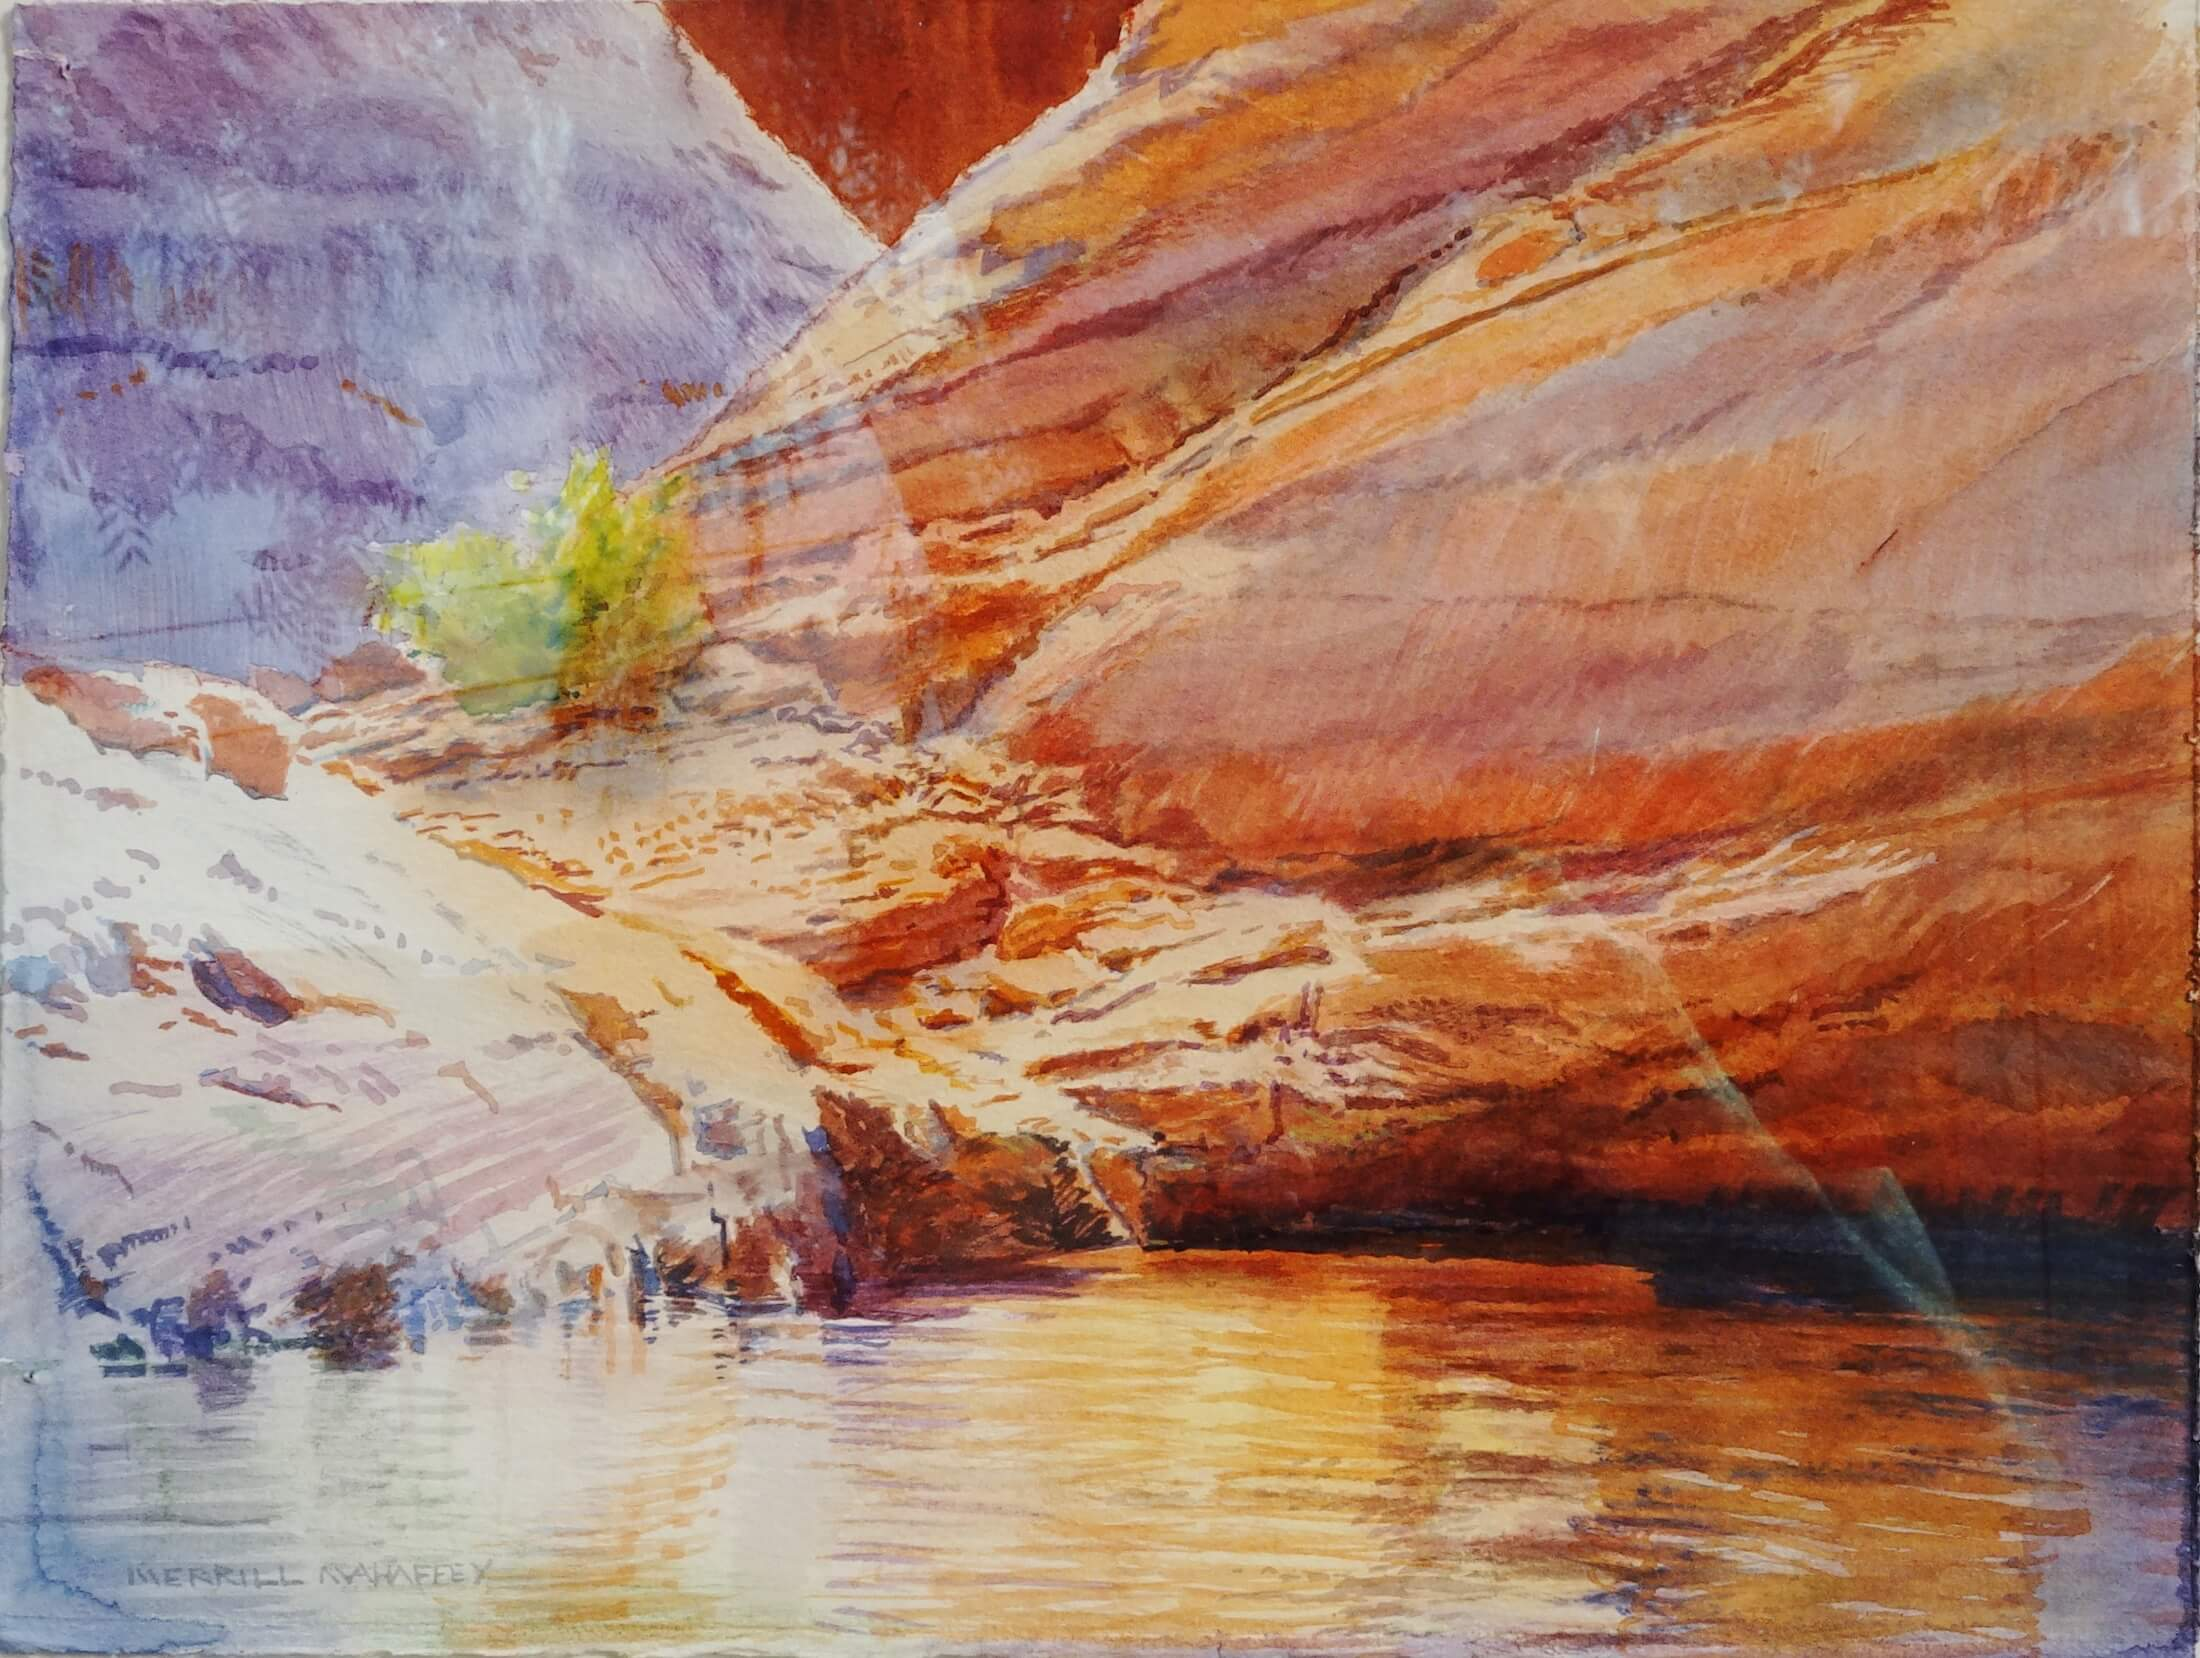 Oak Canyon (Lake Powell)